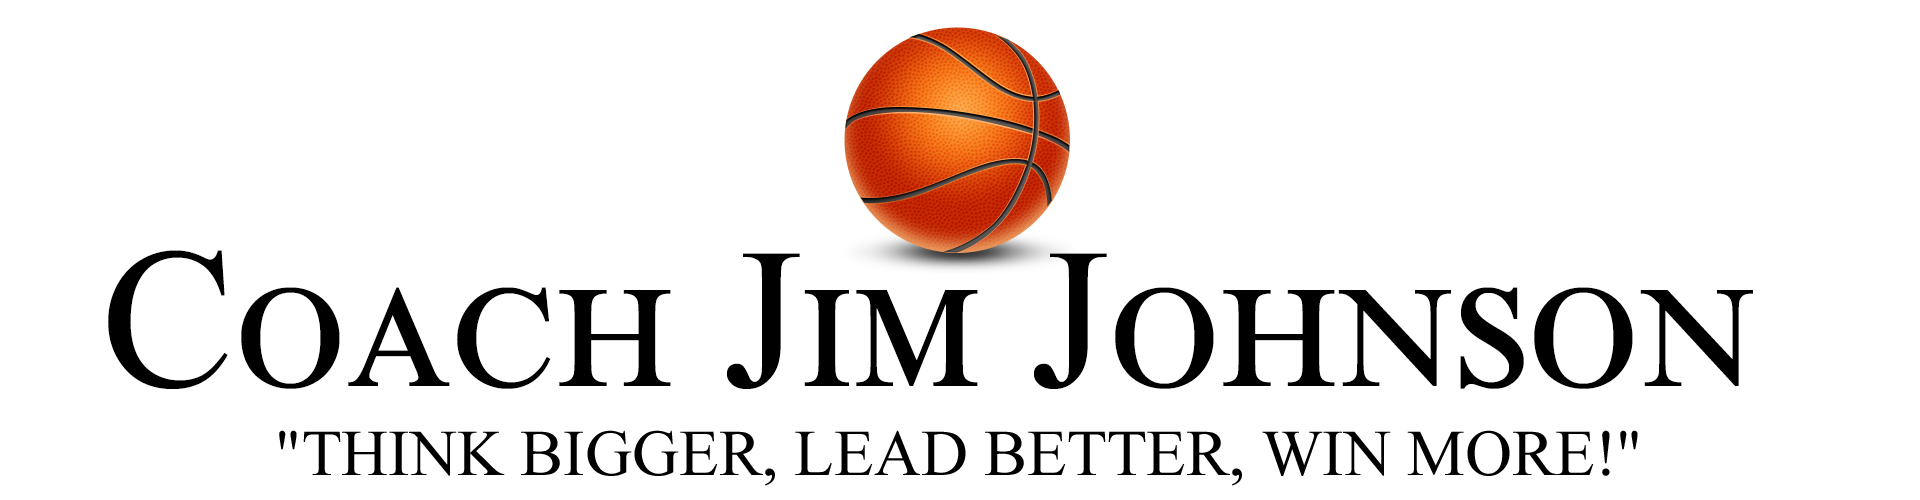 Motivational Speaker, Coach, and Trainer, Coach Jim Johnson